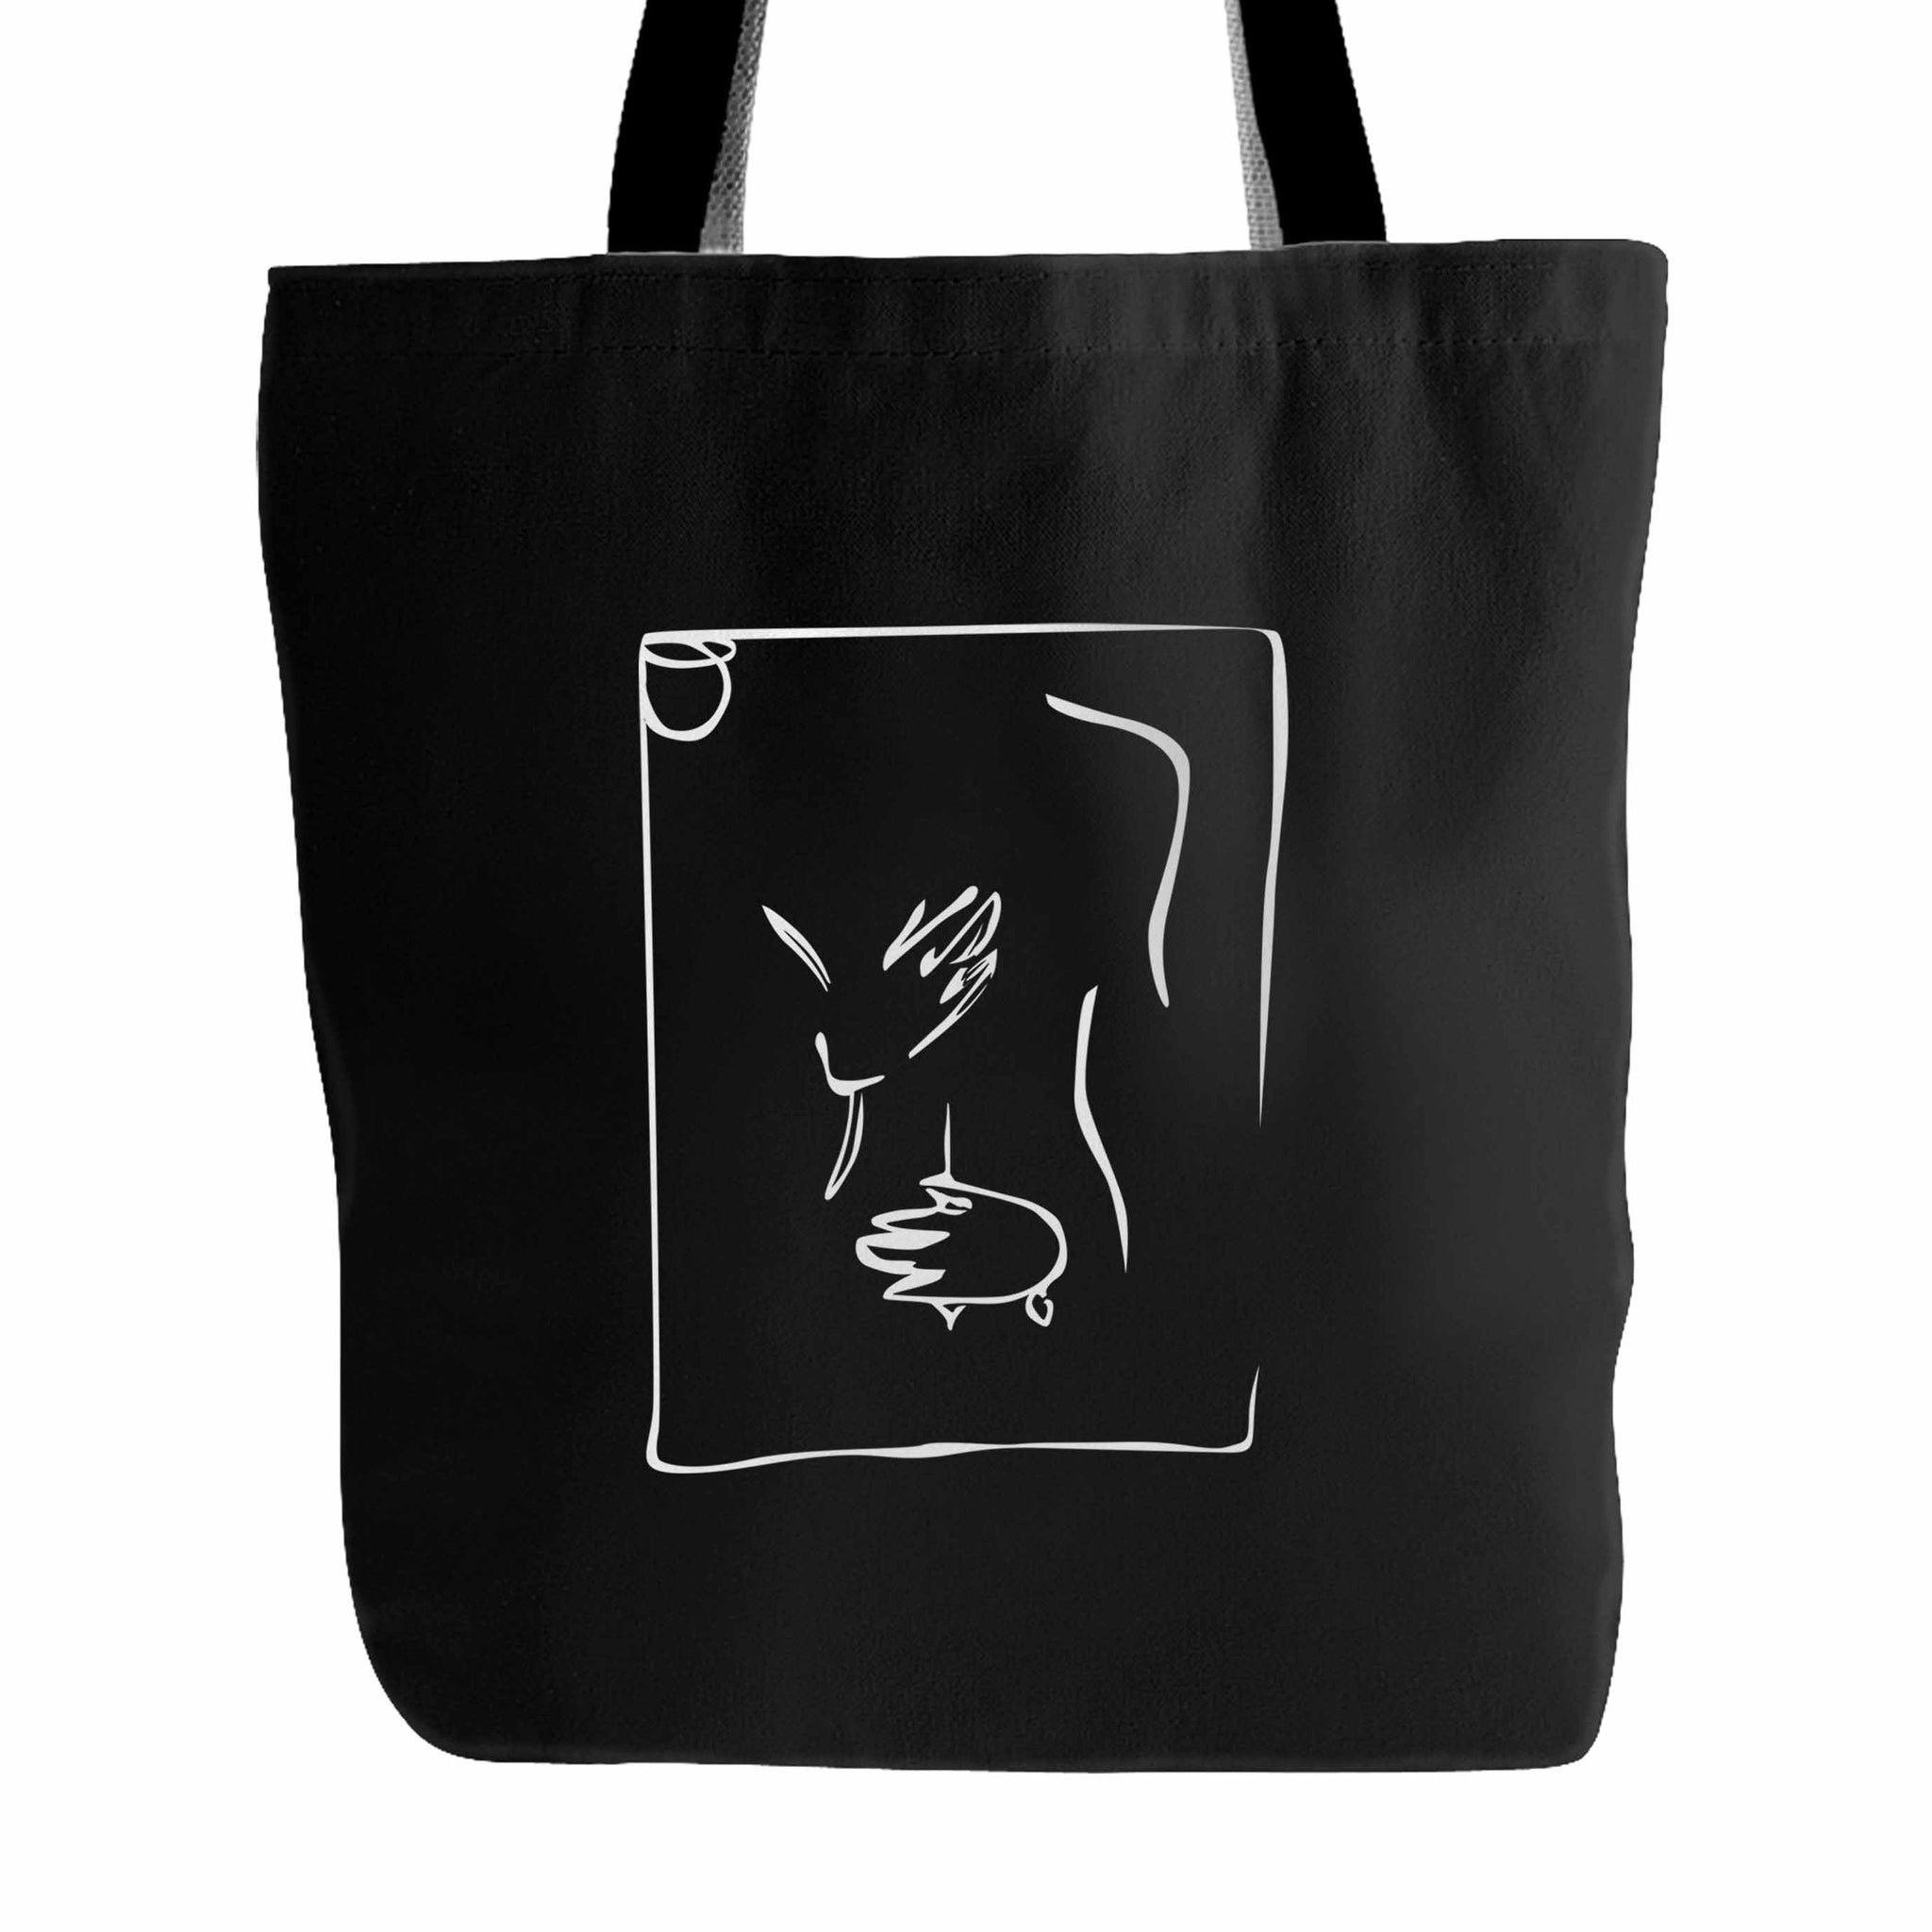 The Hug Tote Bag